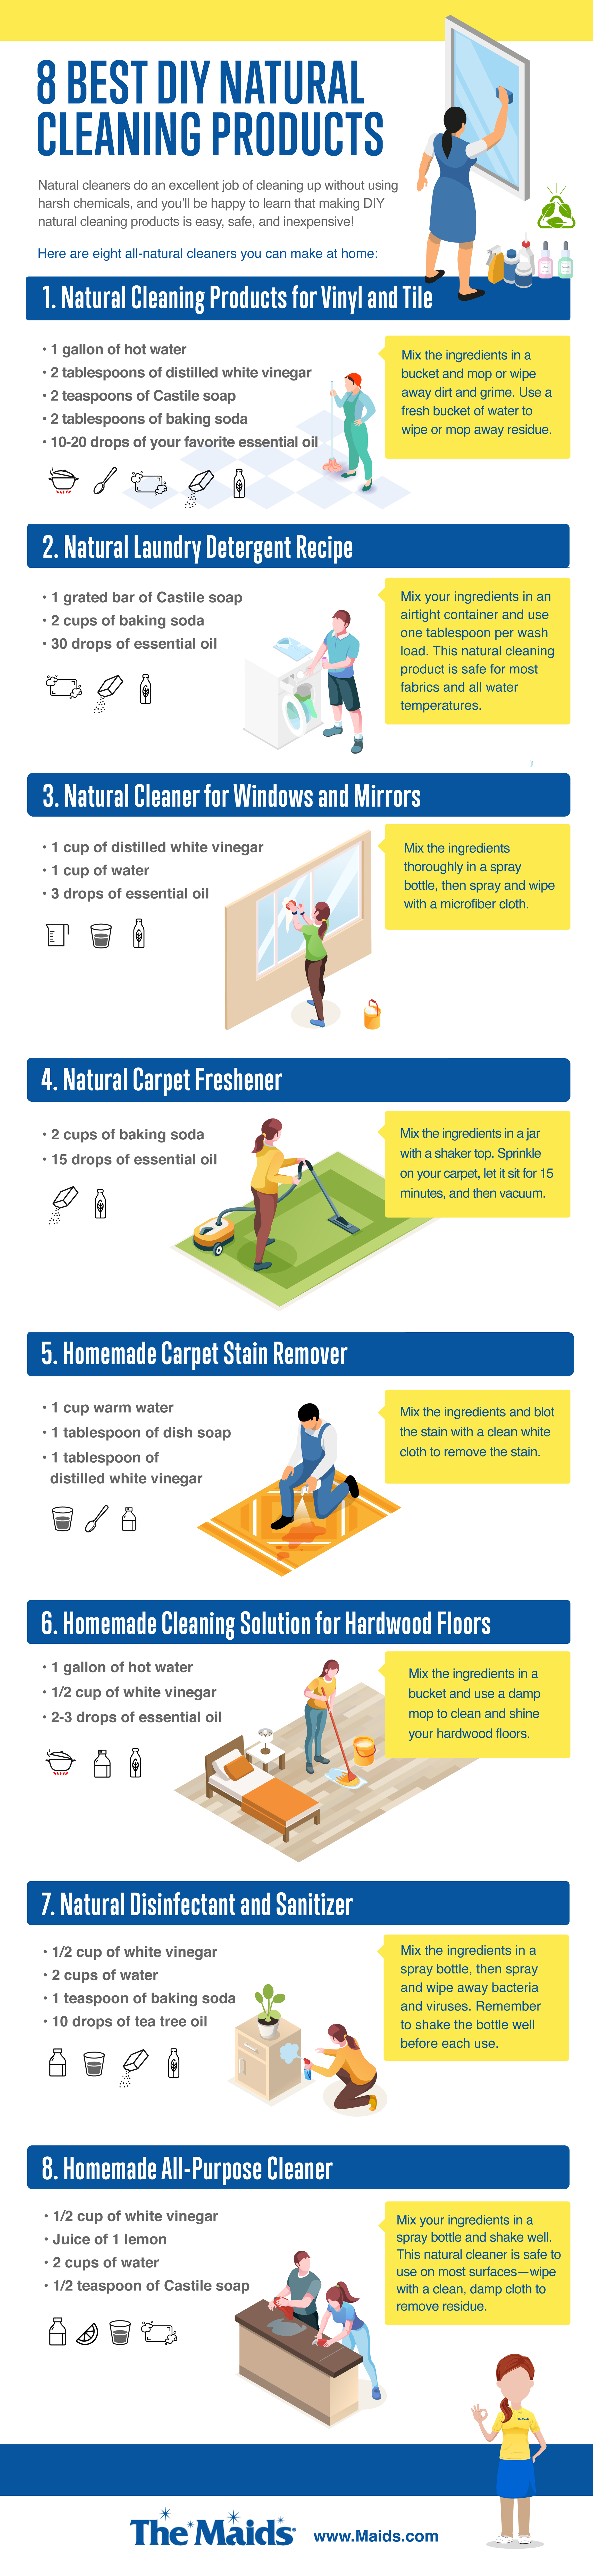 The Best DIY Natural Cleaning Products - Infographic